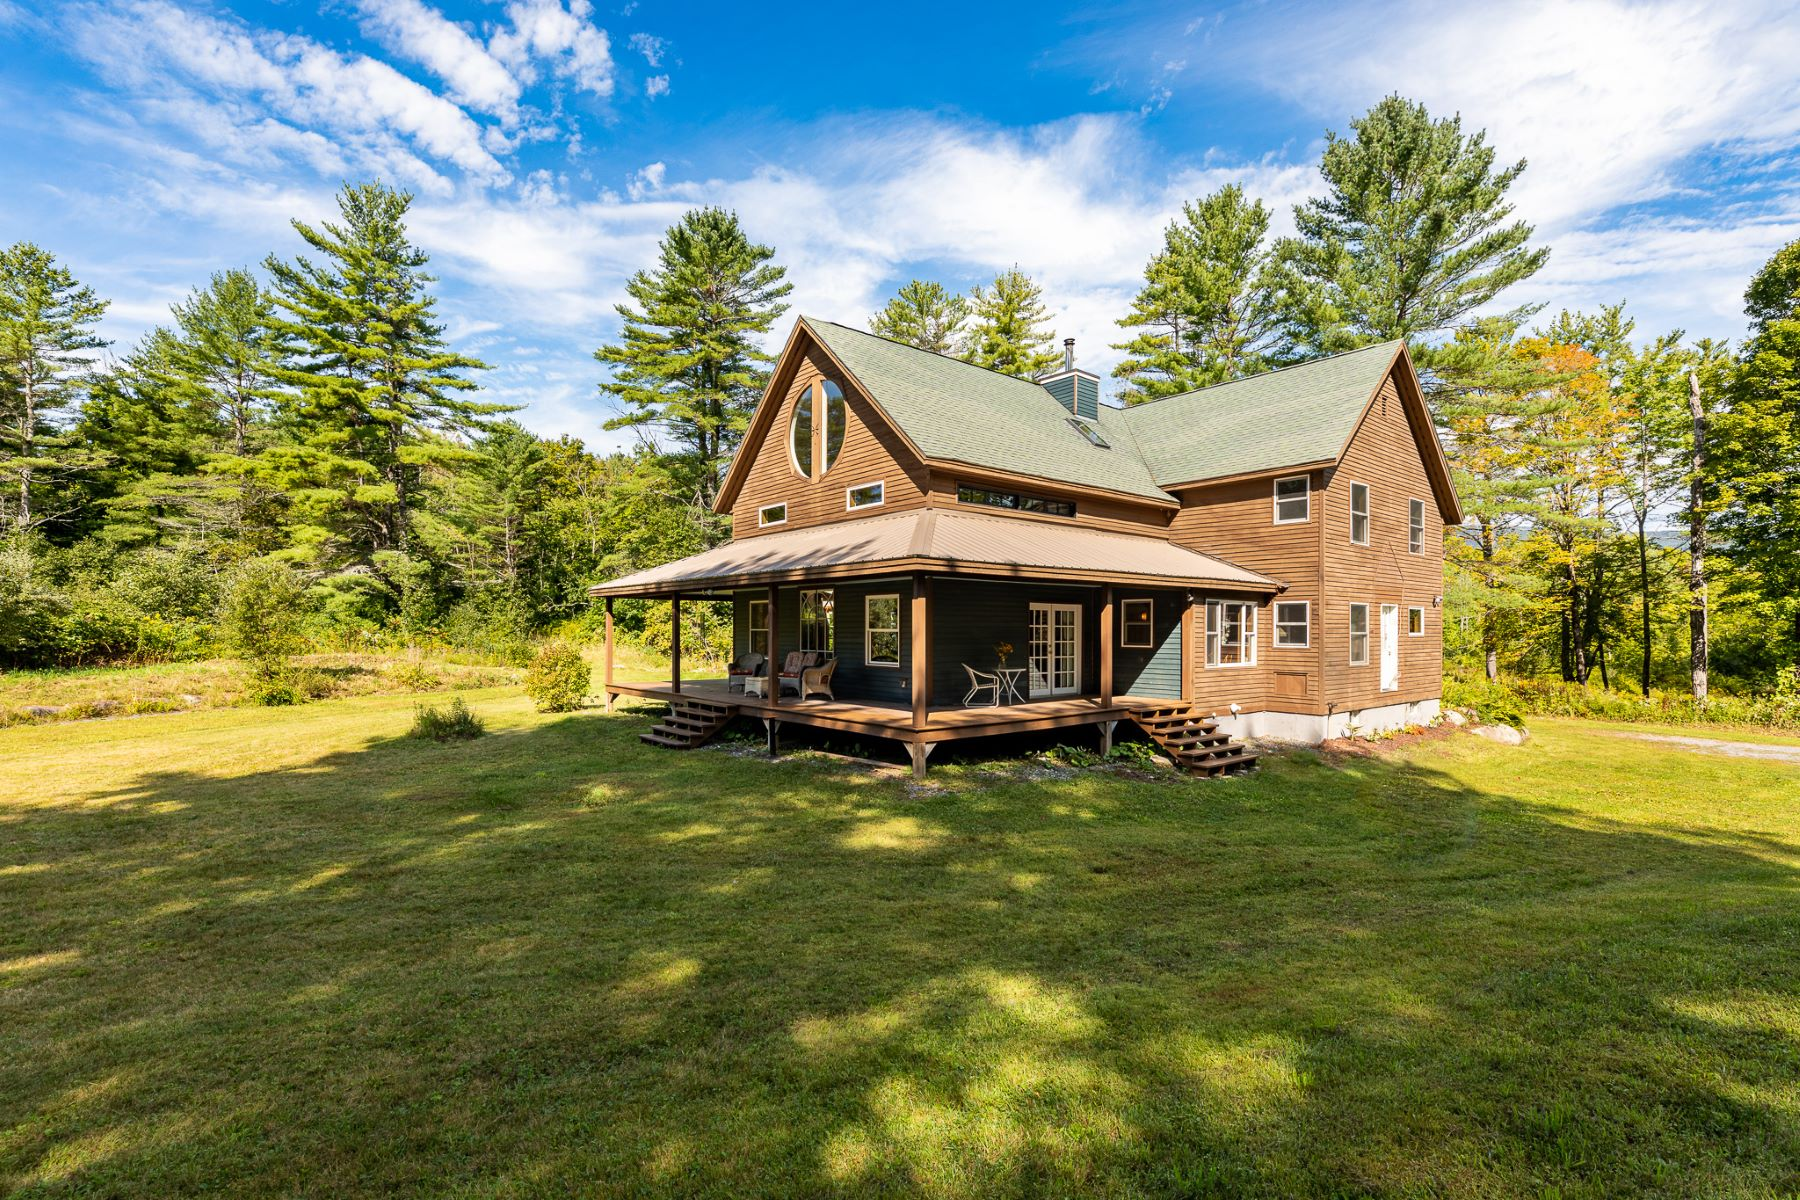 Single Family Homes for Sale at 909 Goulden Ridge Road, Weathersfield 909 Goulden Ridge Rd Weathersfield, Vermont 05030 United States